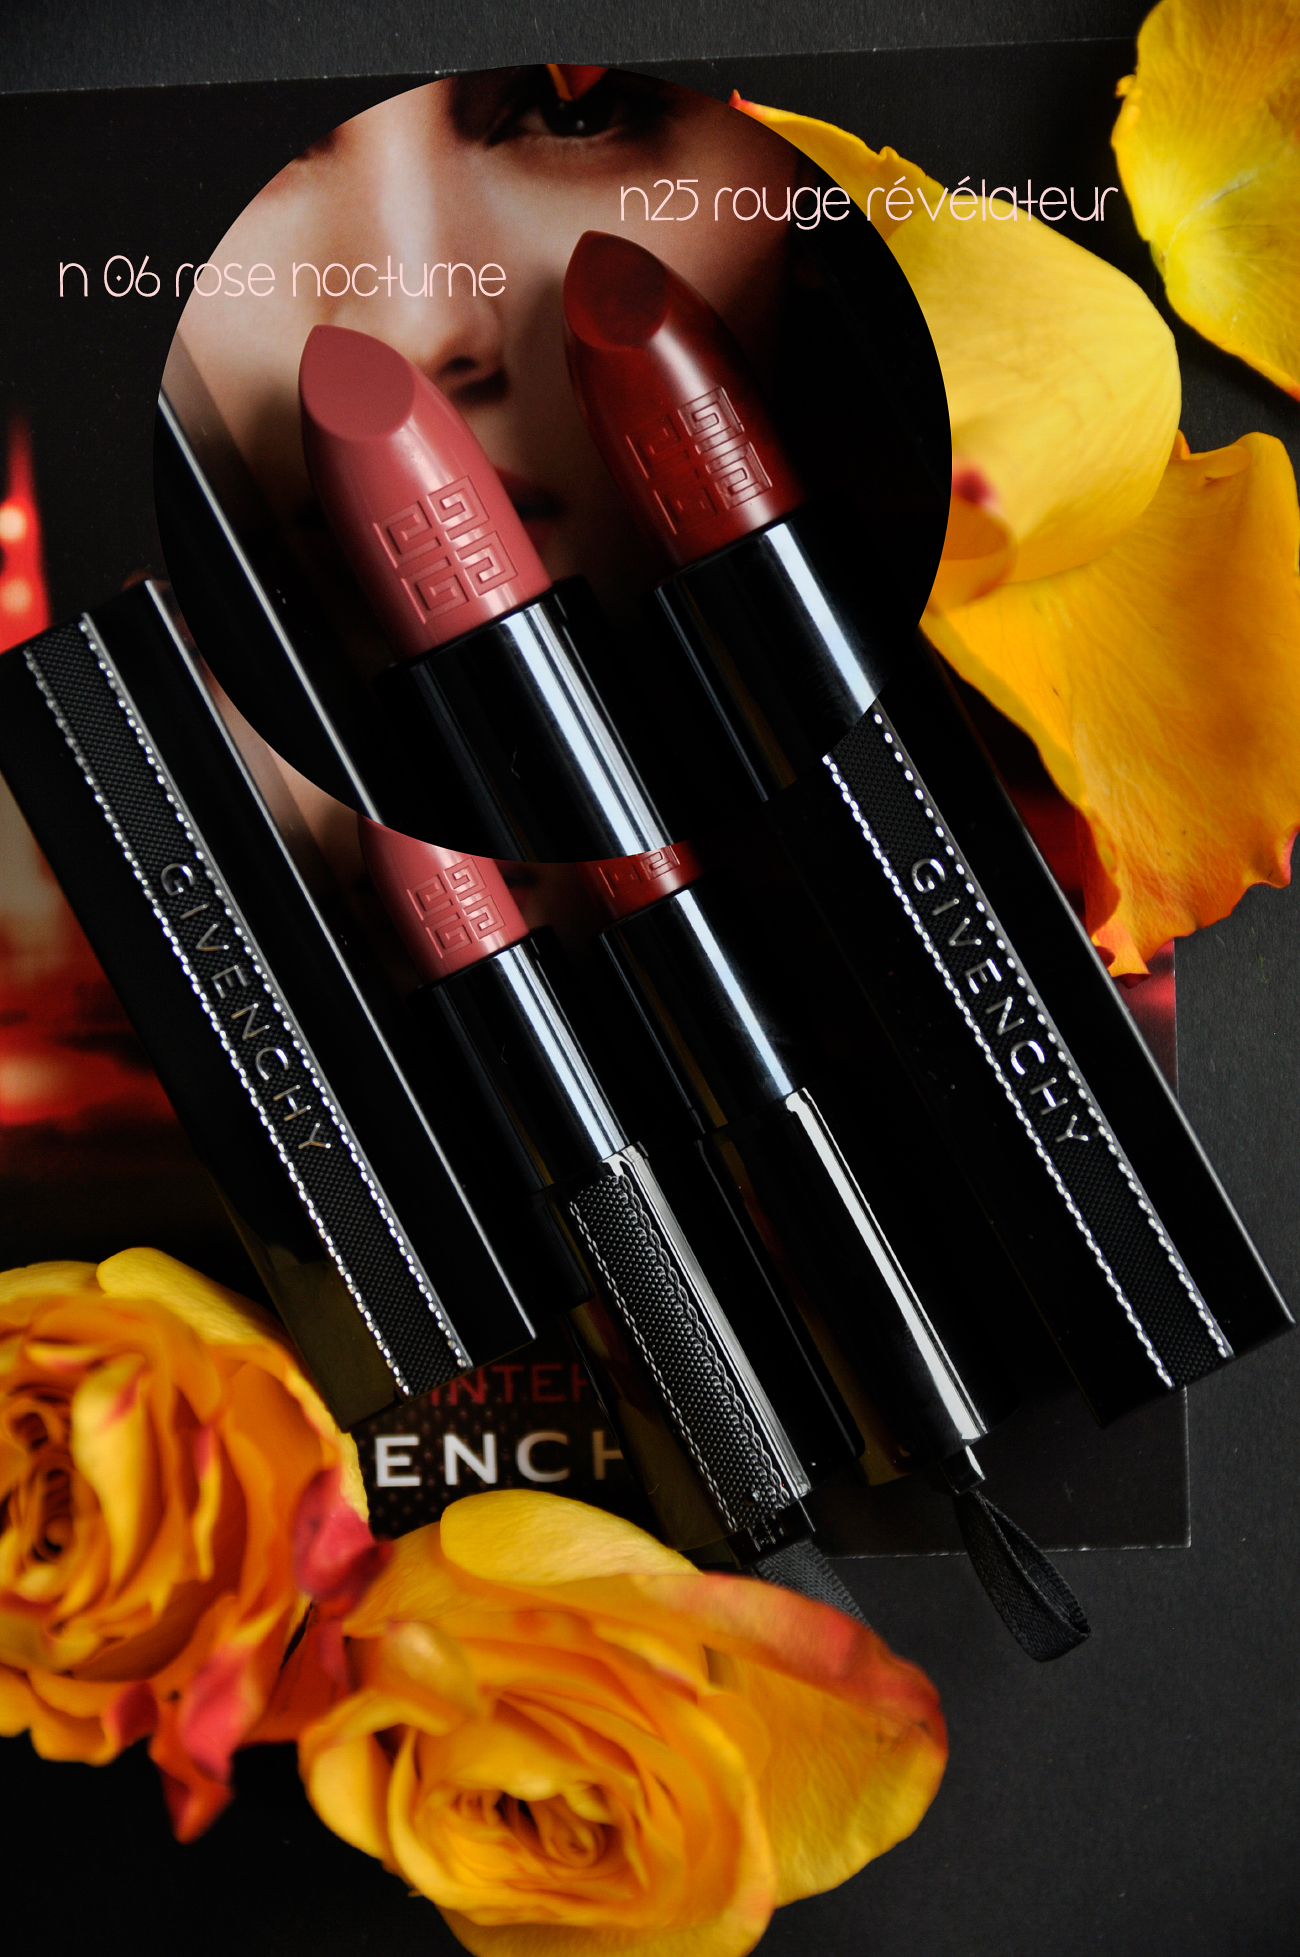 Givenchy-Rouge-Interdit7